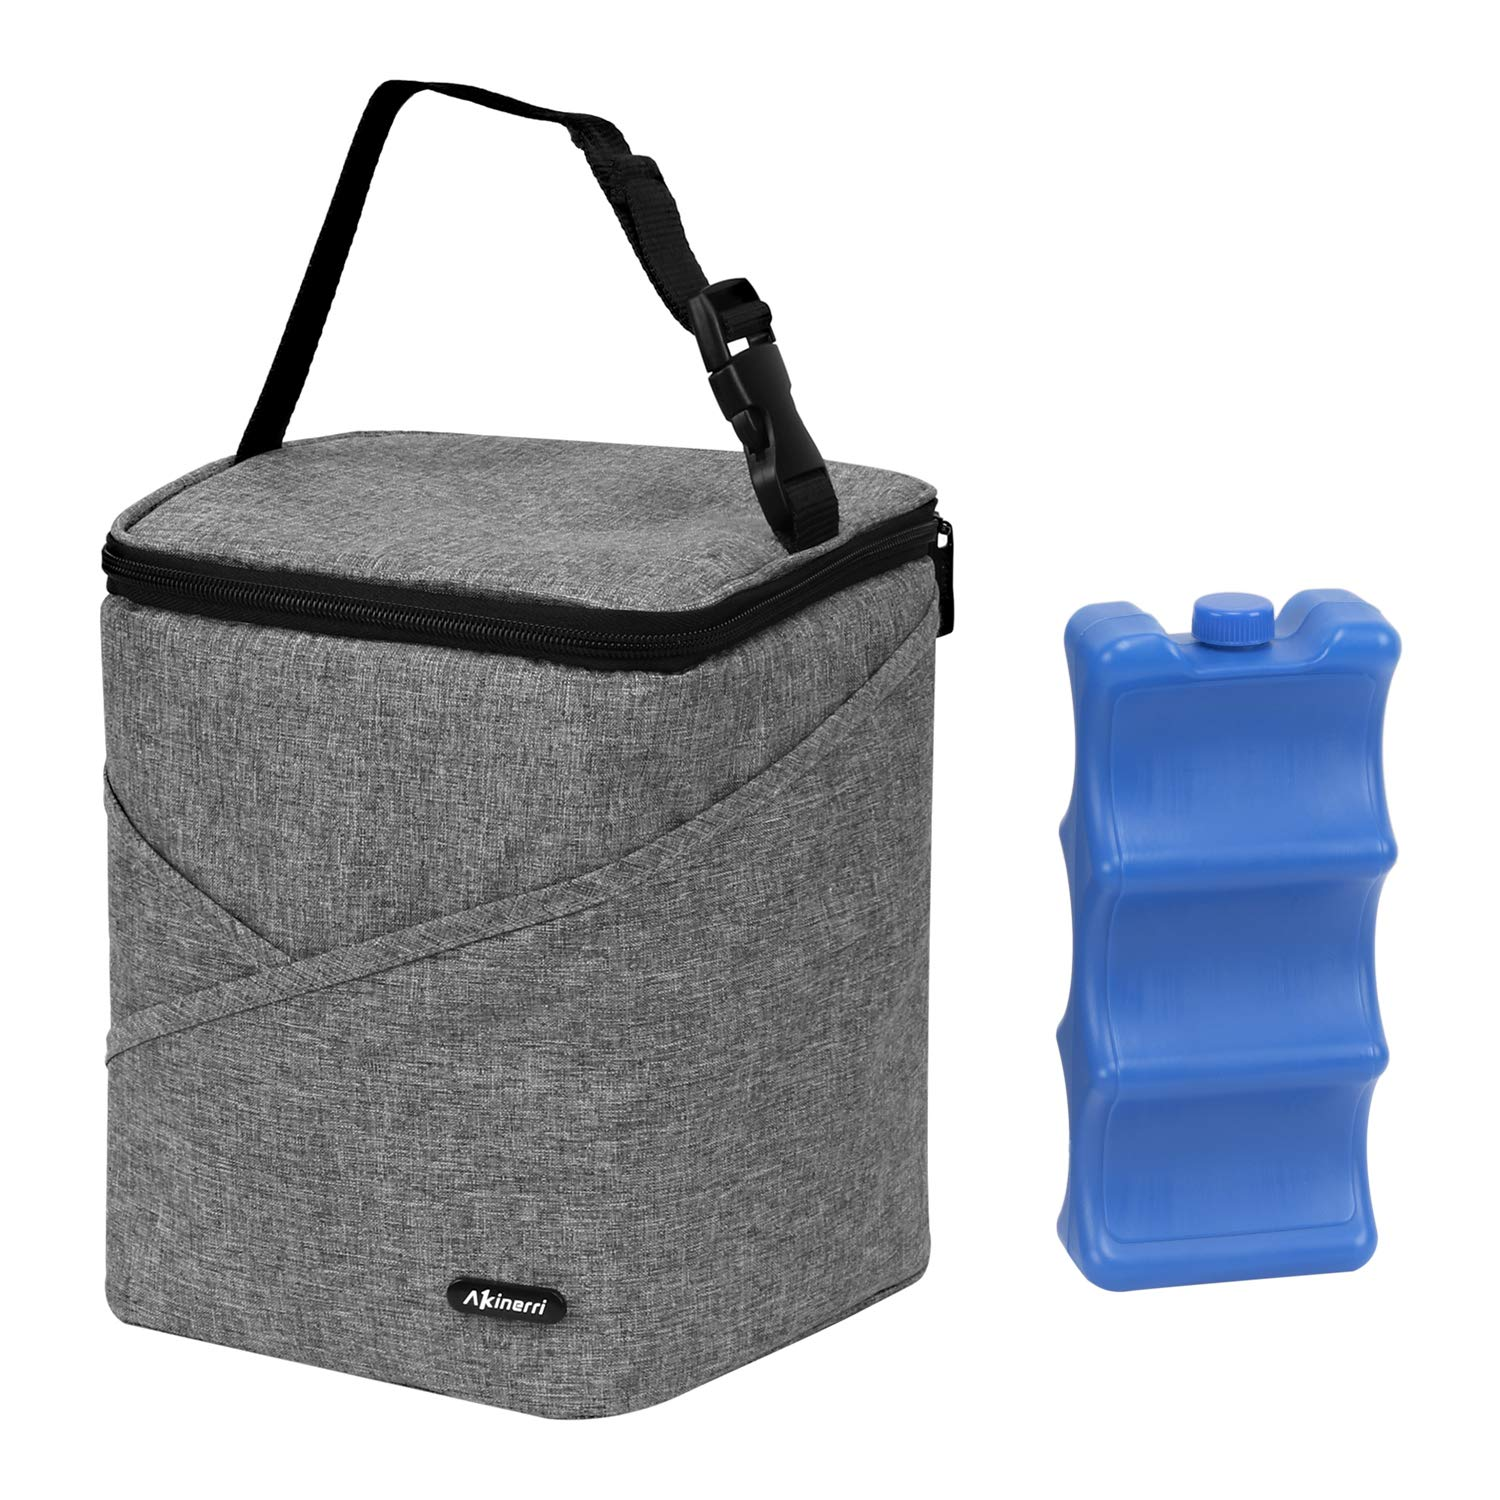 Akinerri Breastmilk Baby Bottle Cooler & Travel Bag with Ice Pack Included. Insulated & Leak Proof, Baby Bottle Tote Bags & Baby Food Bag. Easily attaches to Stroller or Diaper Bag